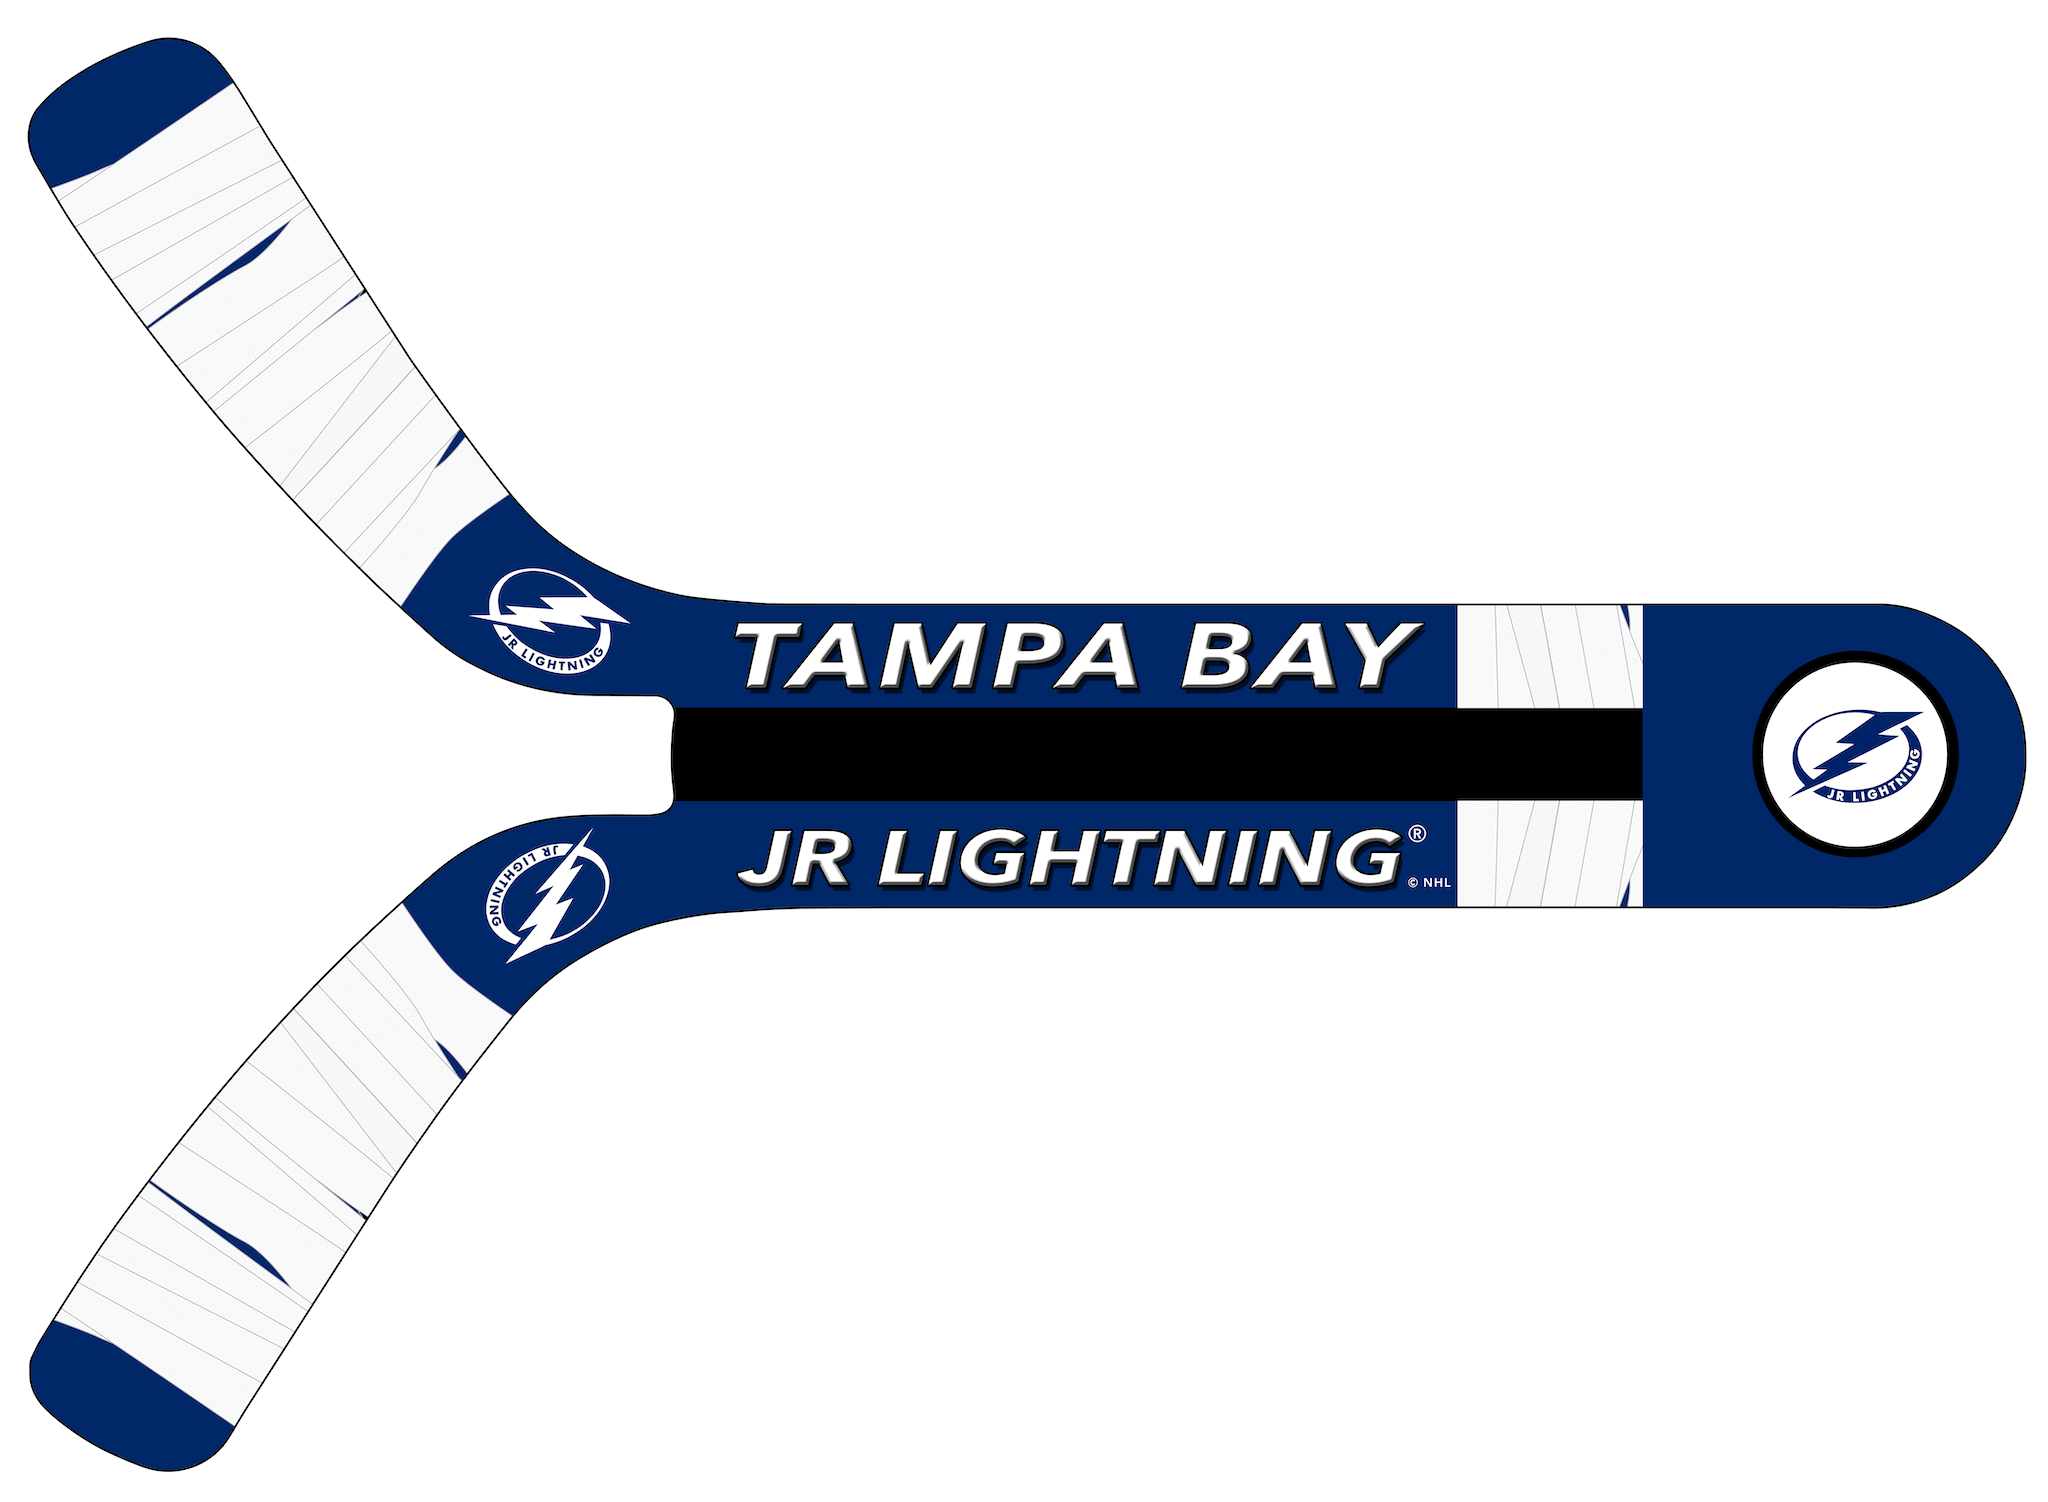 Tampa Bay JR Lightning Fan Blades